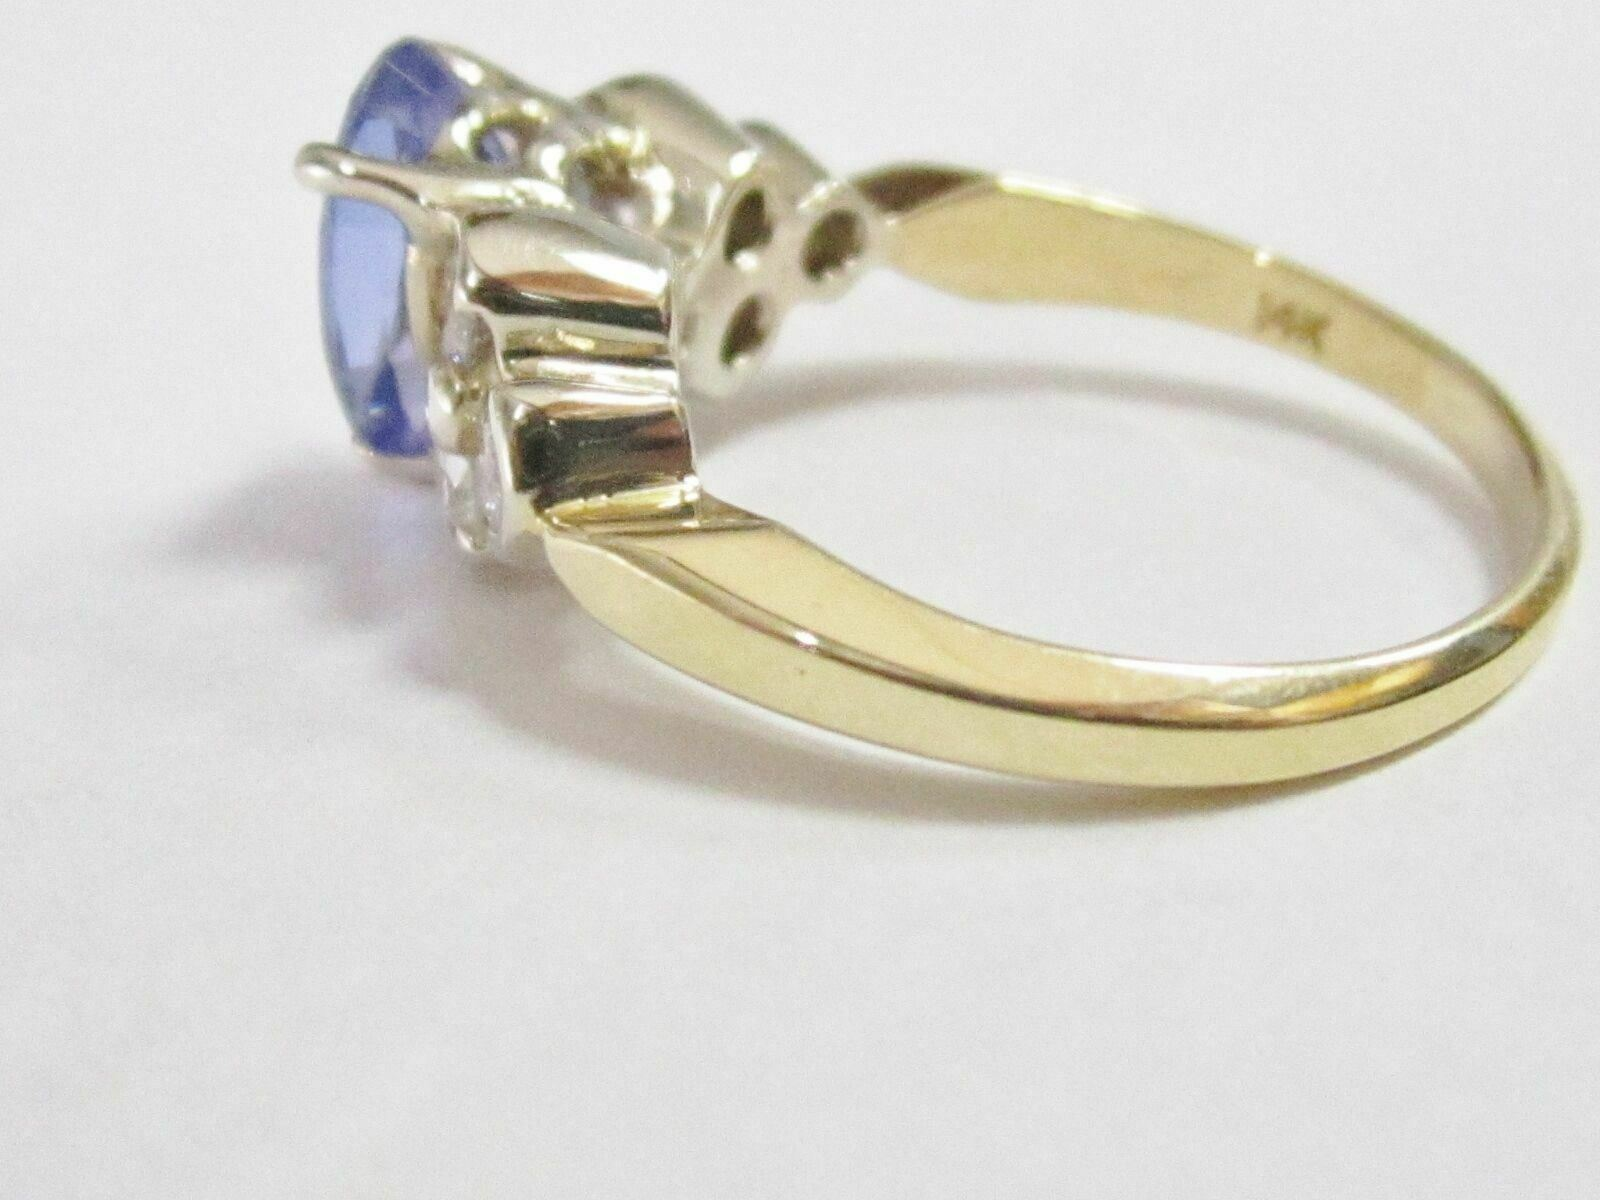 1.94 TCW Natural Pear Tanzanite & Diamond Accents Solitaire Ring Size 6.25